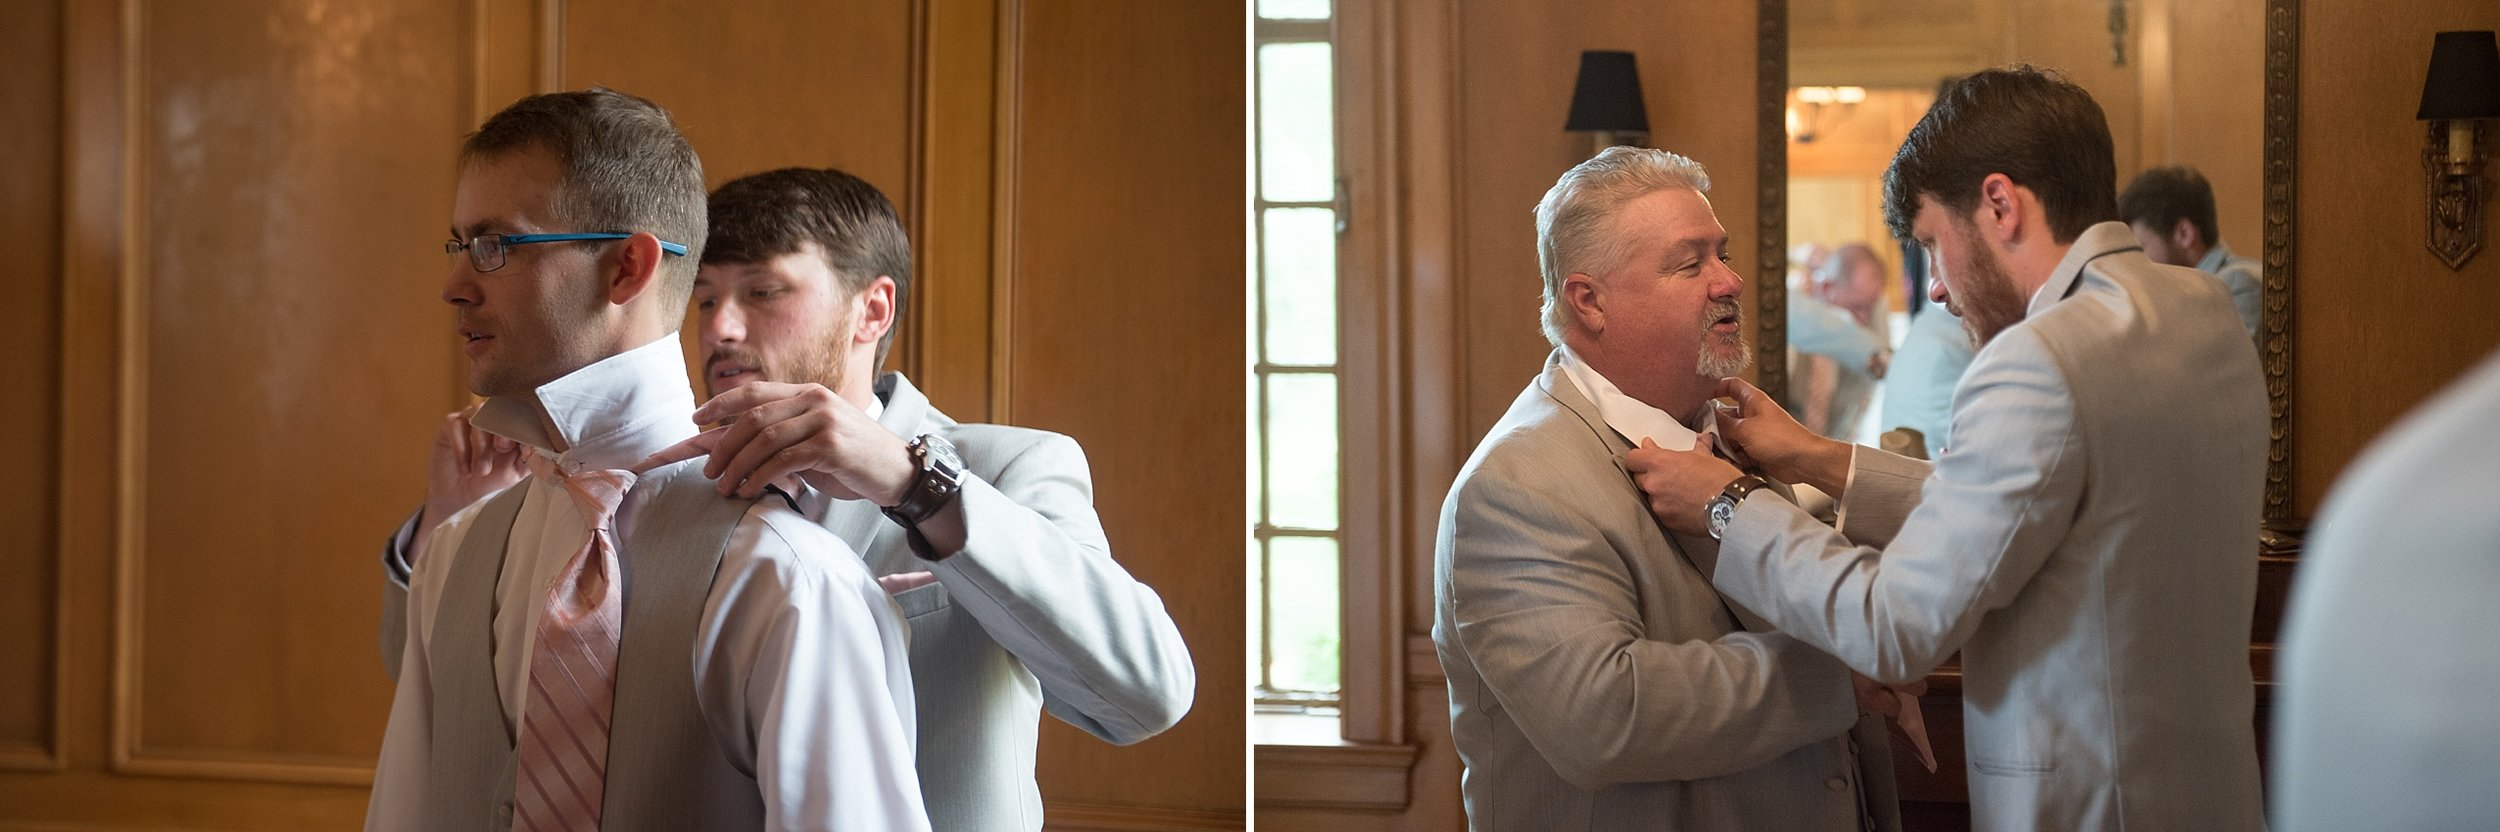 Groom helps father of the bride with his tie